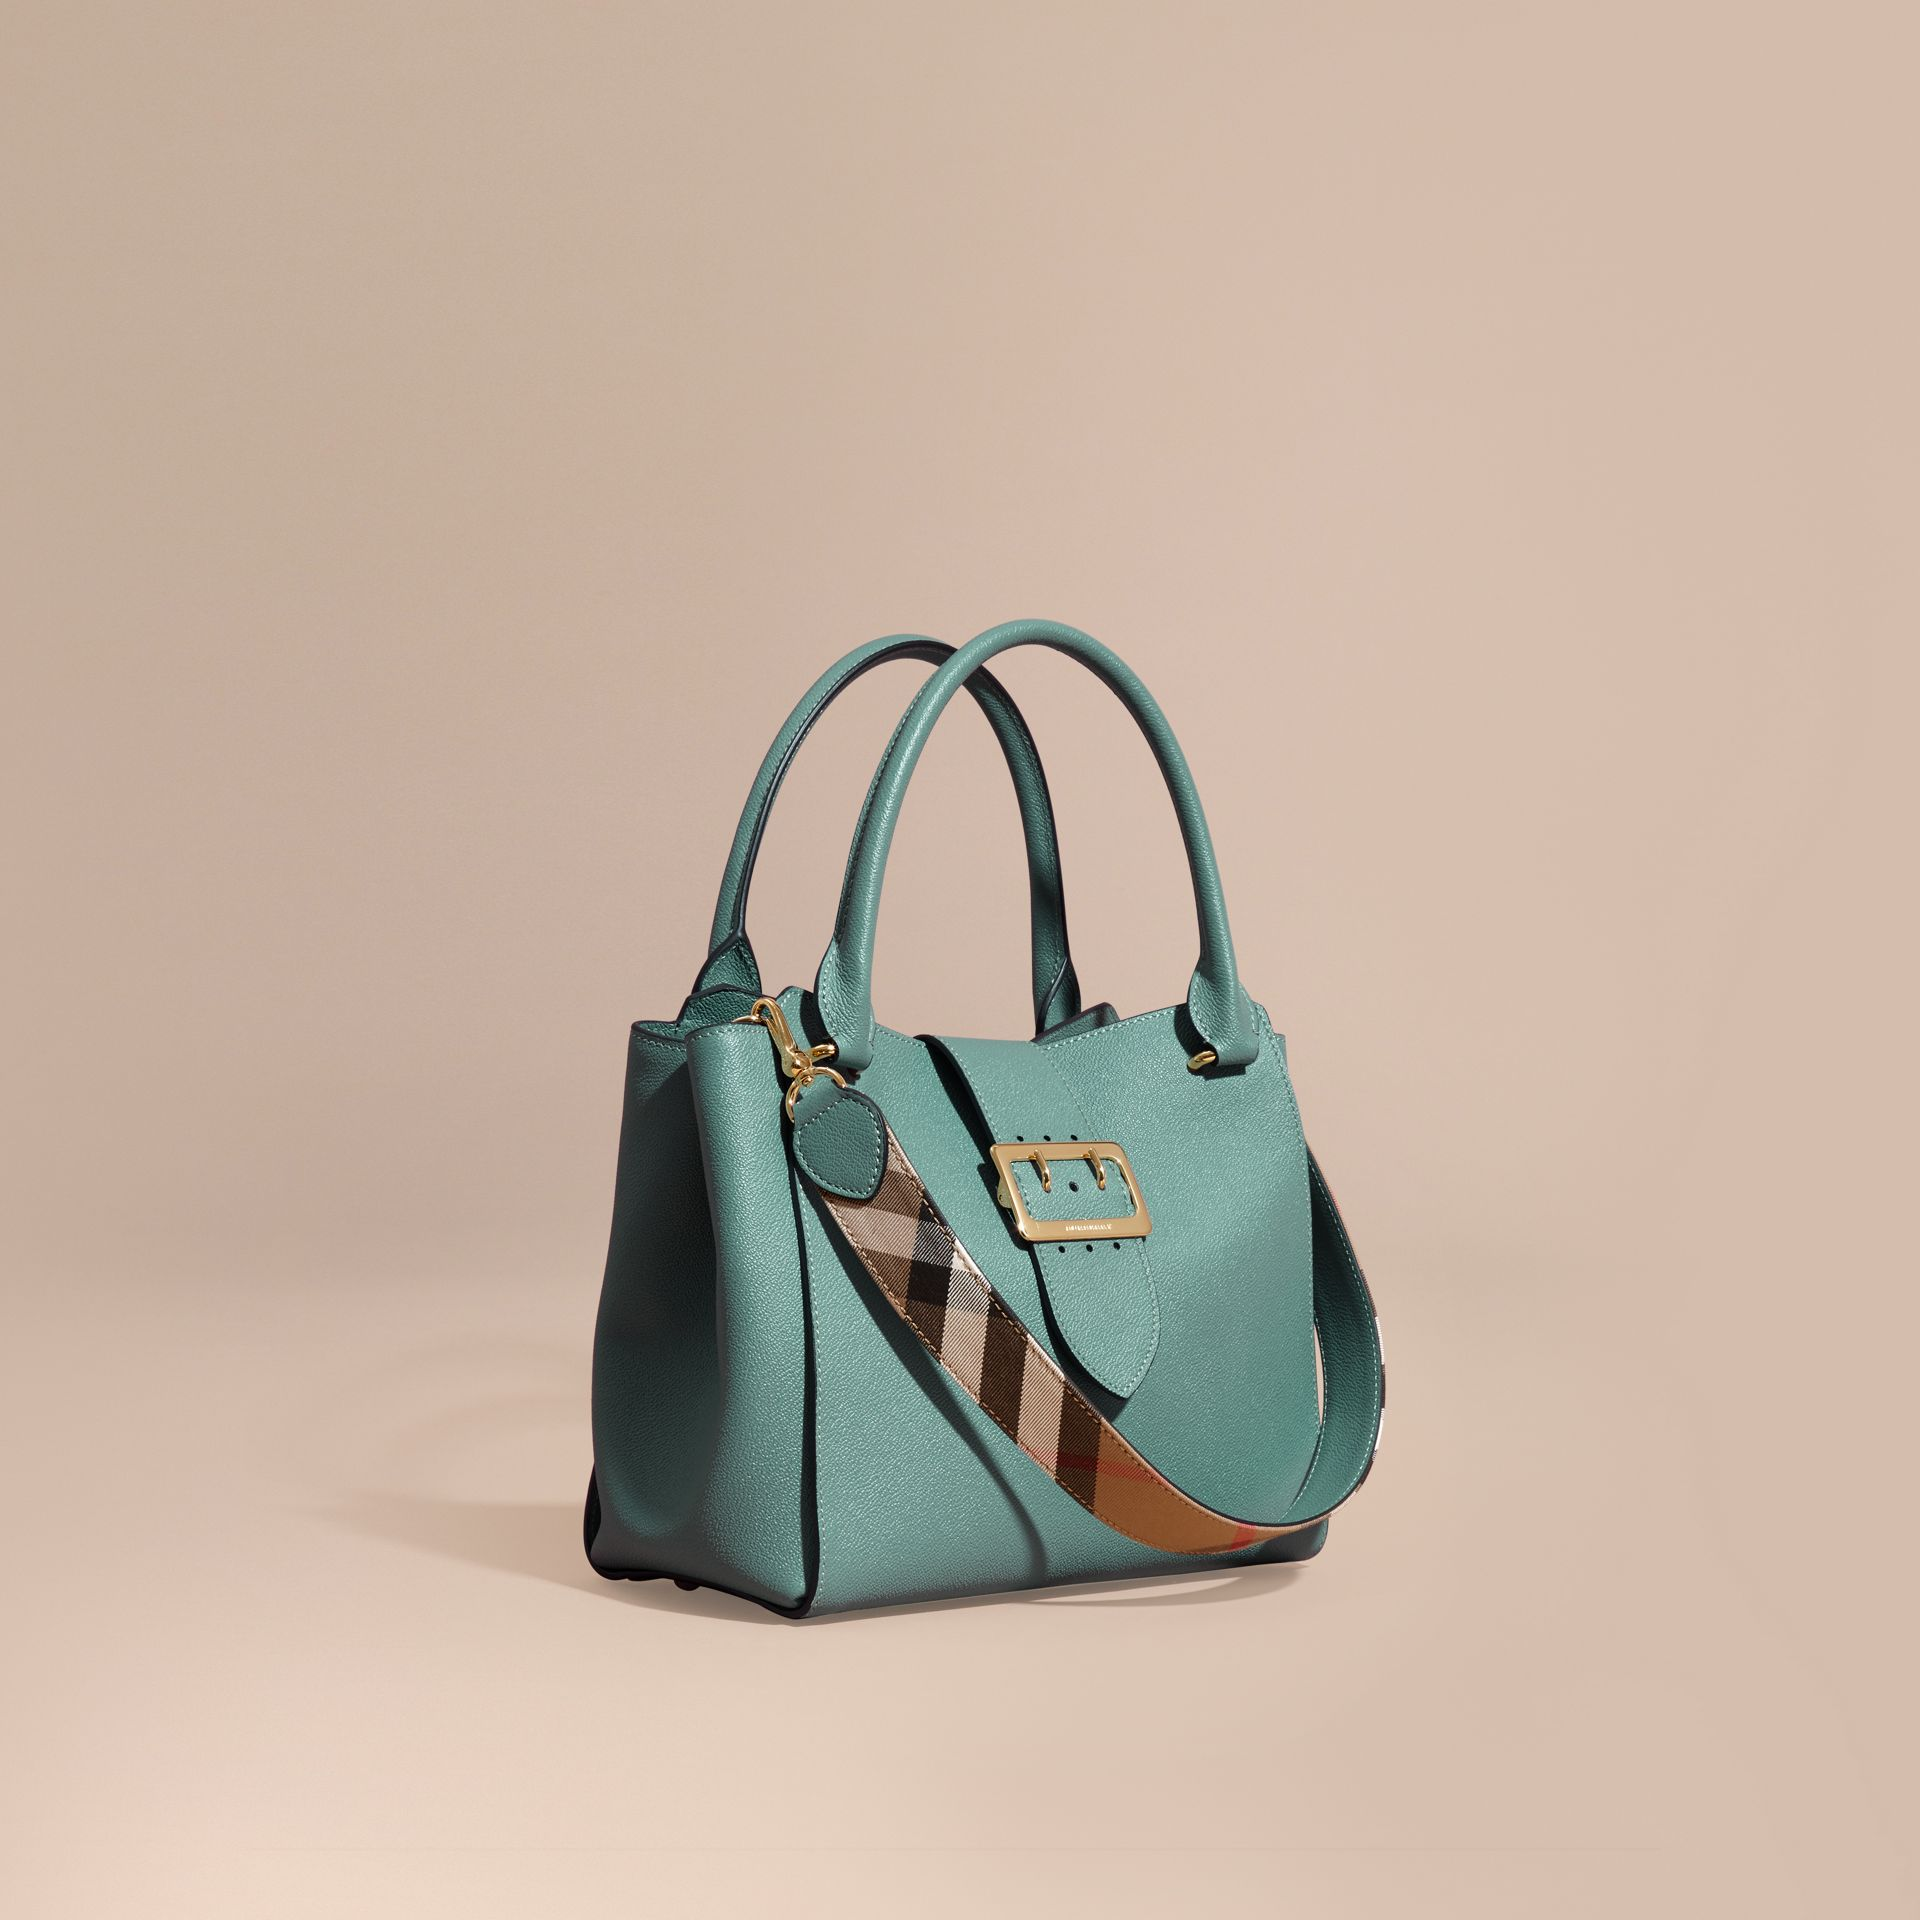 Eucalyptus green The Medium Buckle Tote in Grainy Leather Eucalyptus Green - gallery image 1